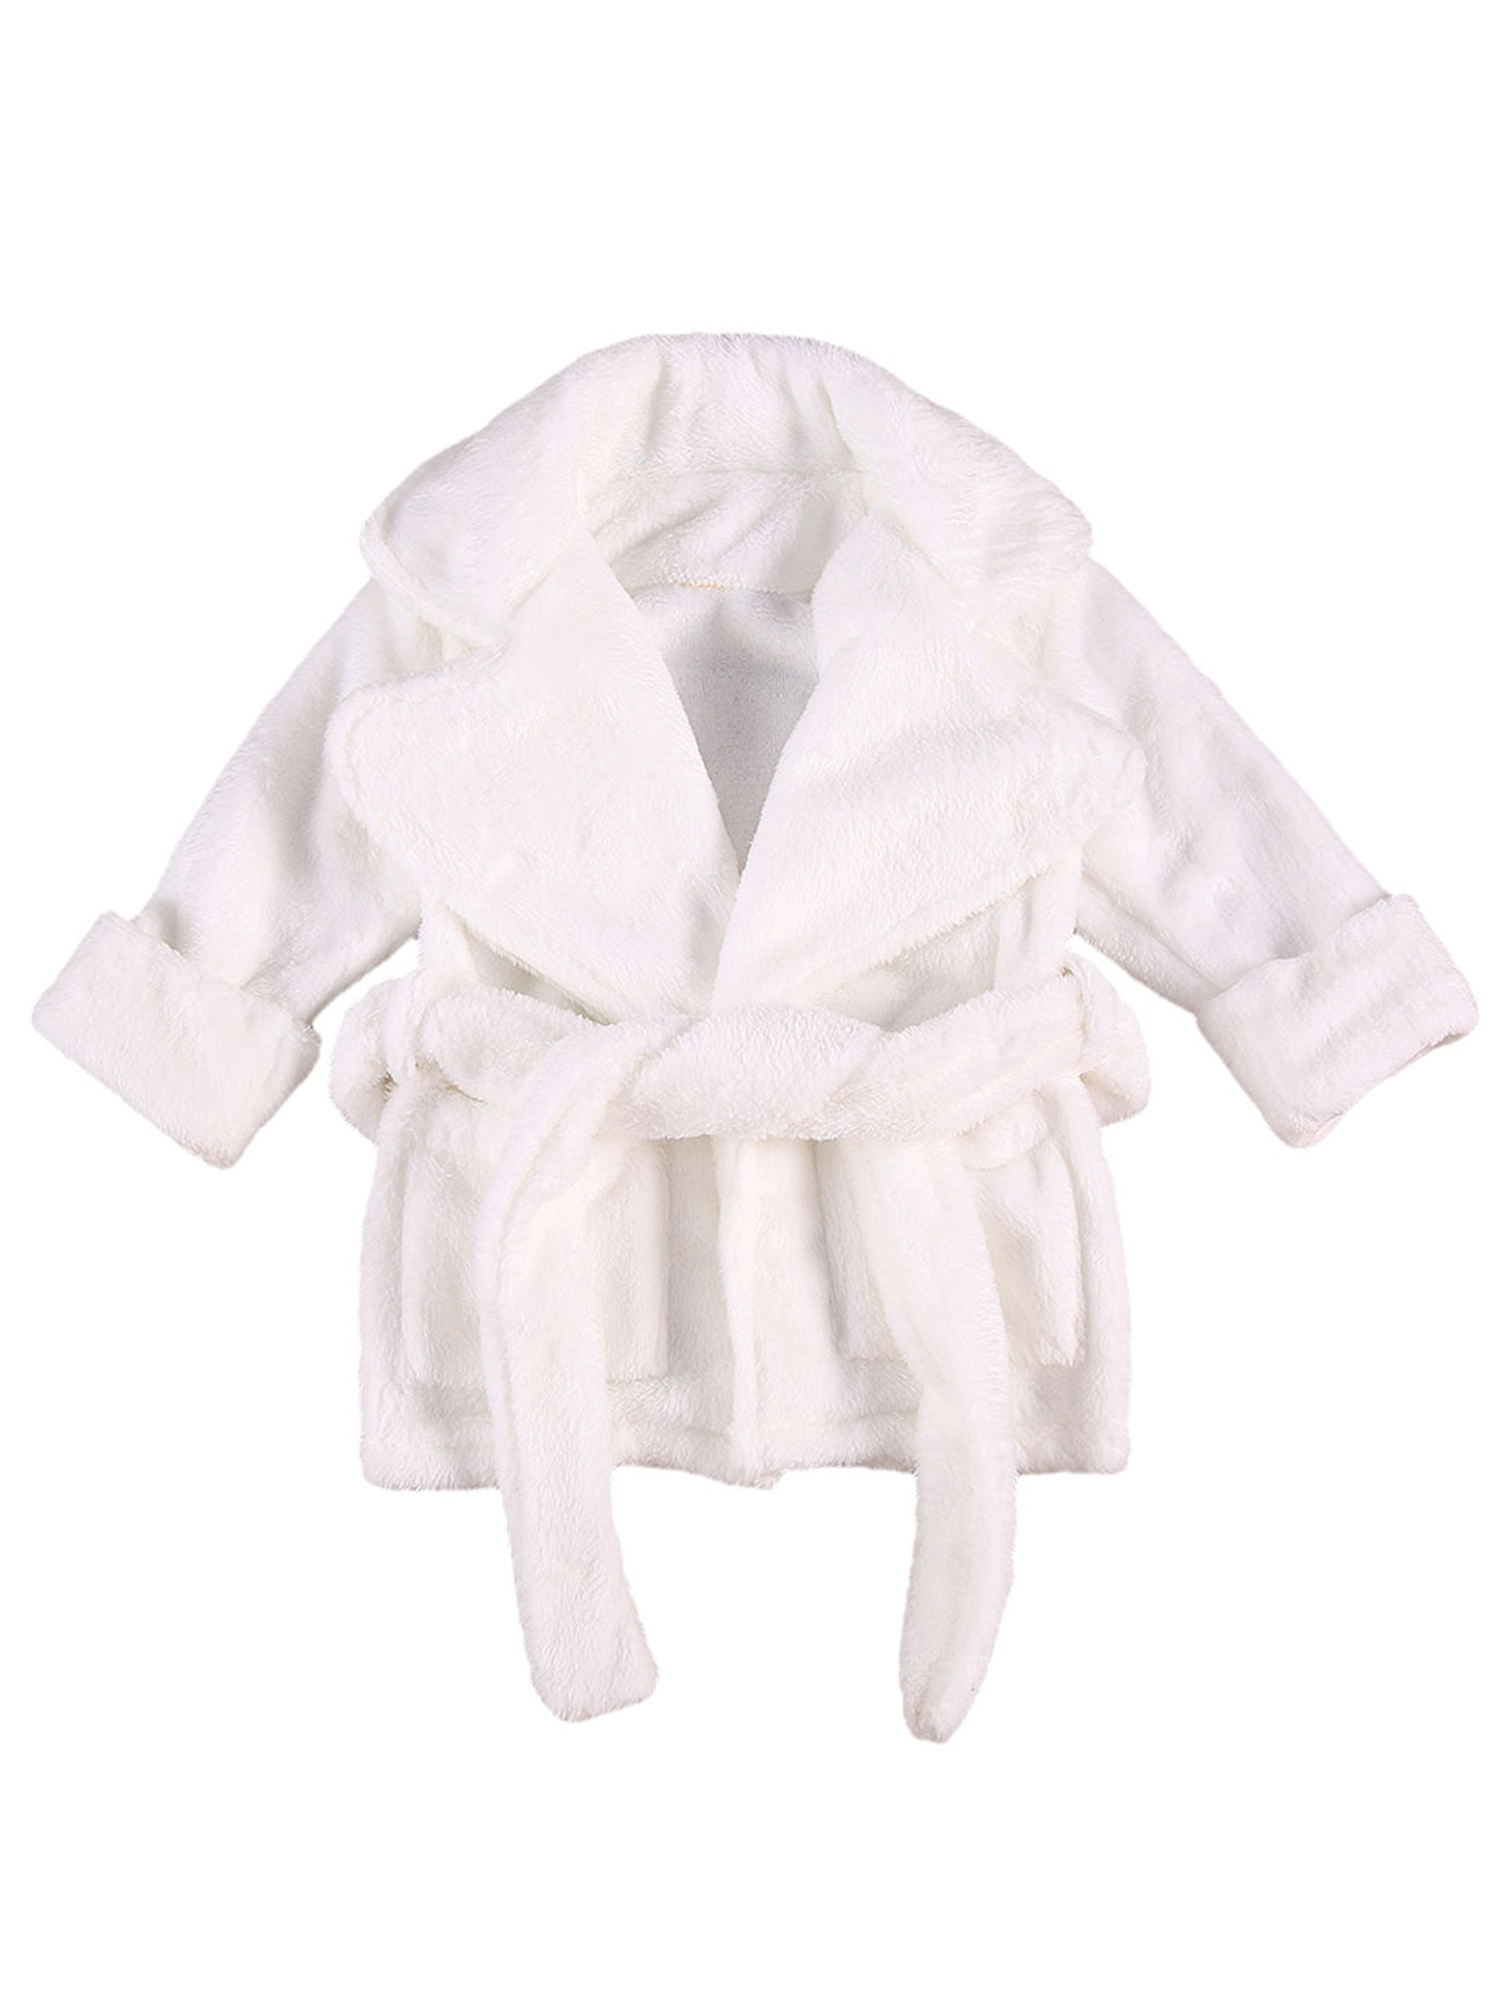 Newborn Baby Girls Boys Clothes Plush Bathrobe Plain Kimono Nightgowns Towel Robe Nightwear Sleepwear Outfits